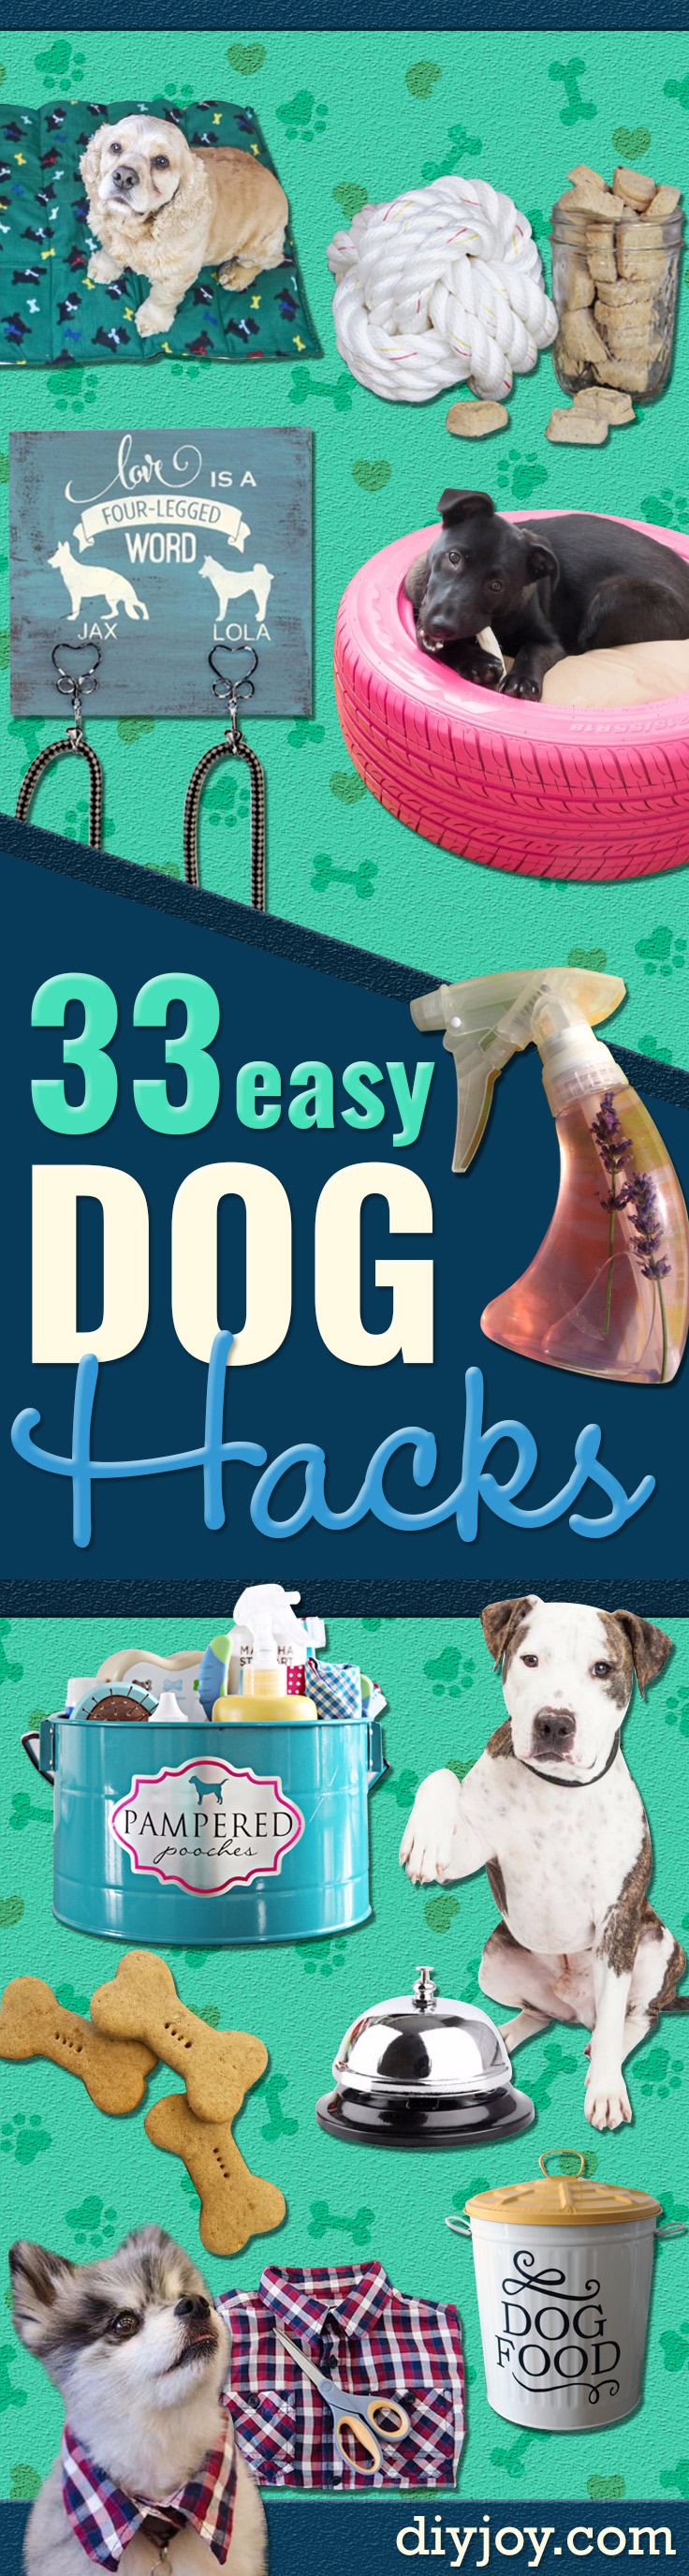 DIY Dog Hacks - Training Tips, Ideas for Dog Beds and Toys, Homemade Remedies for Fleas and Scratching - Do It Yourself Dog Treat Recips, Food and Gear for Your Pet #diy #dogs #crafts